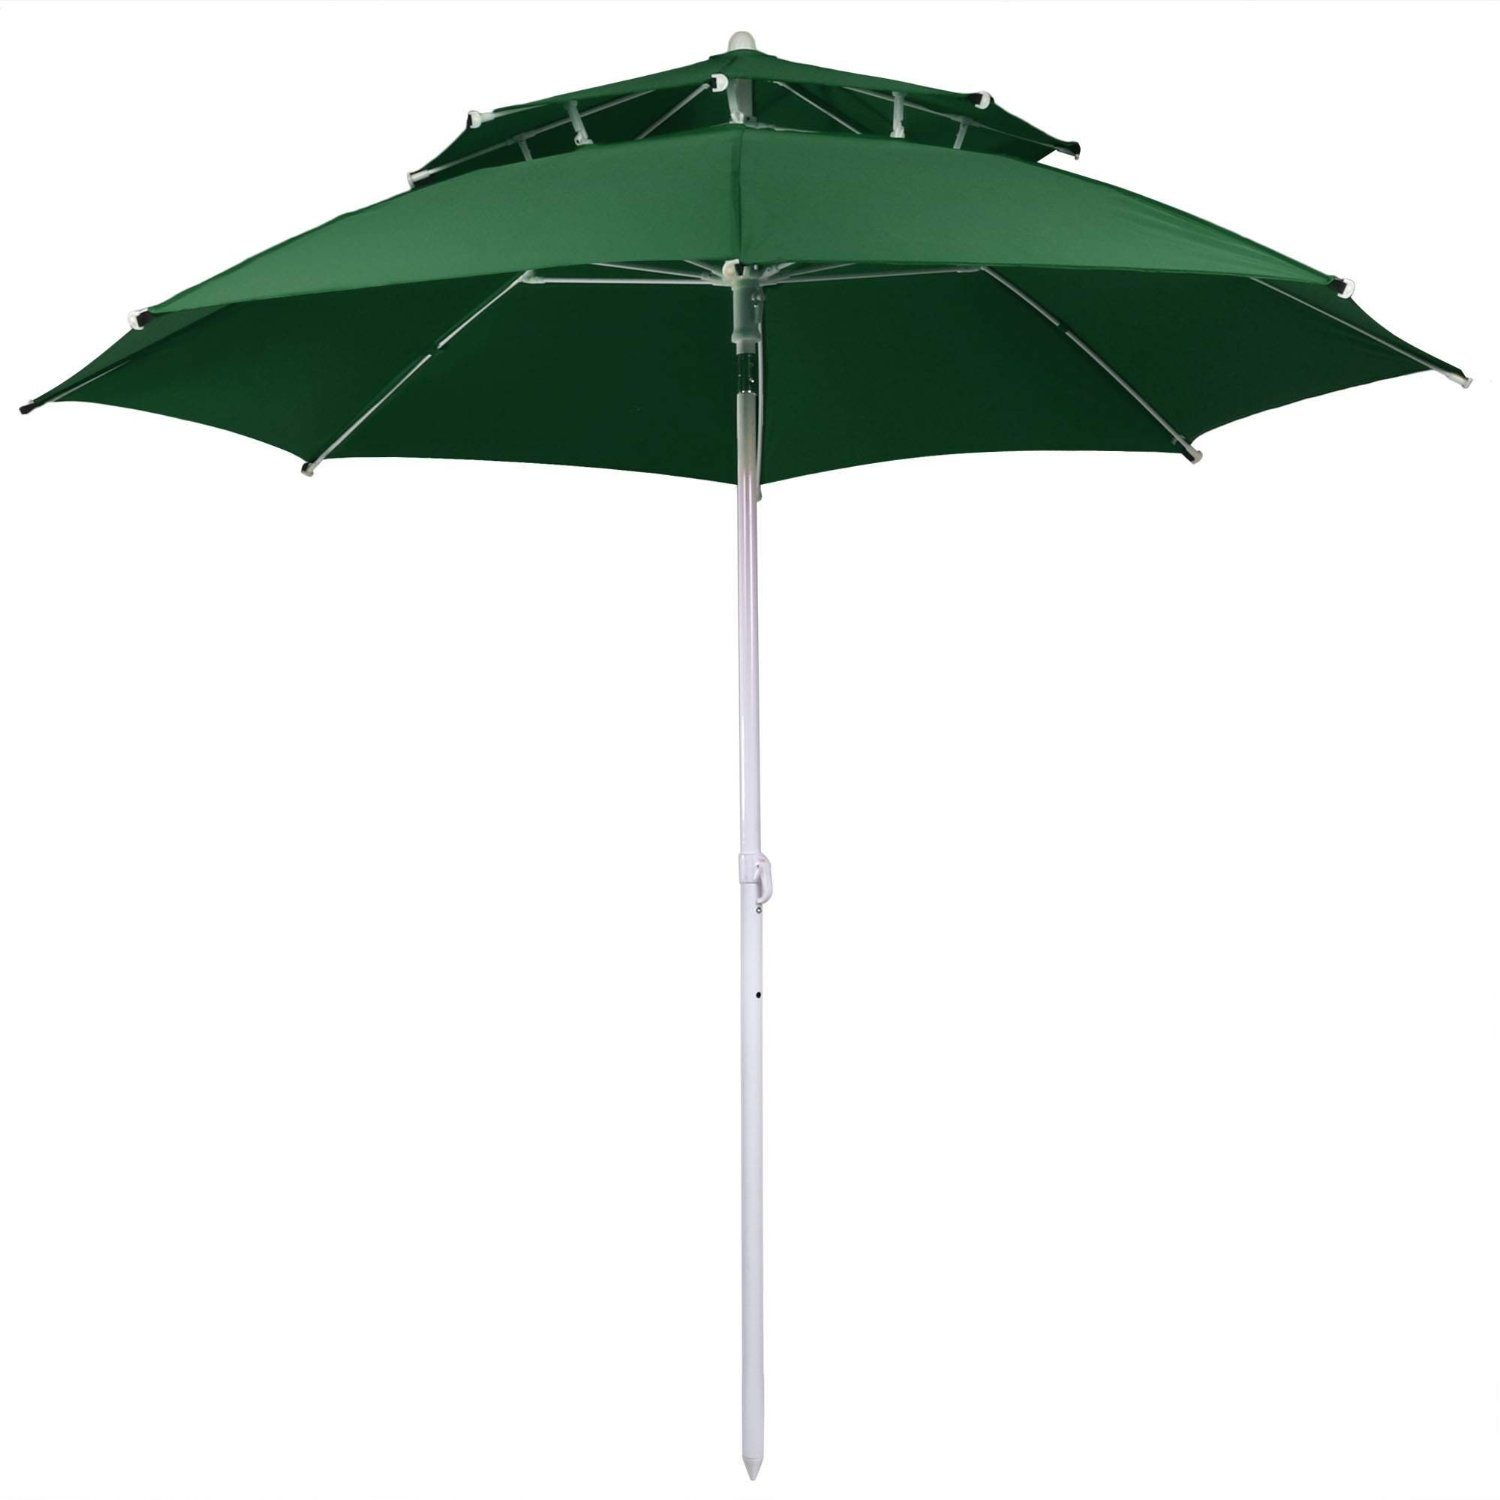 8FT Folding 2 Layers Outdoor Beach Patio Umbrella with Carry Bag